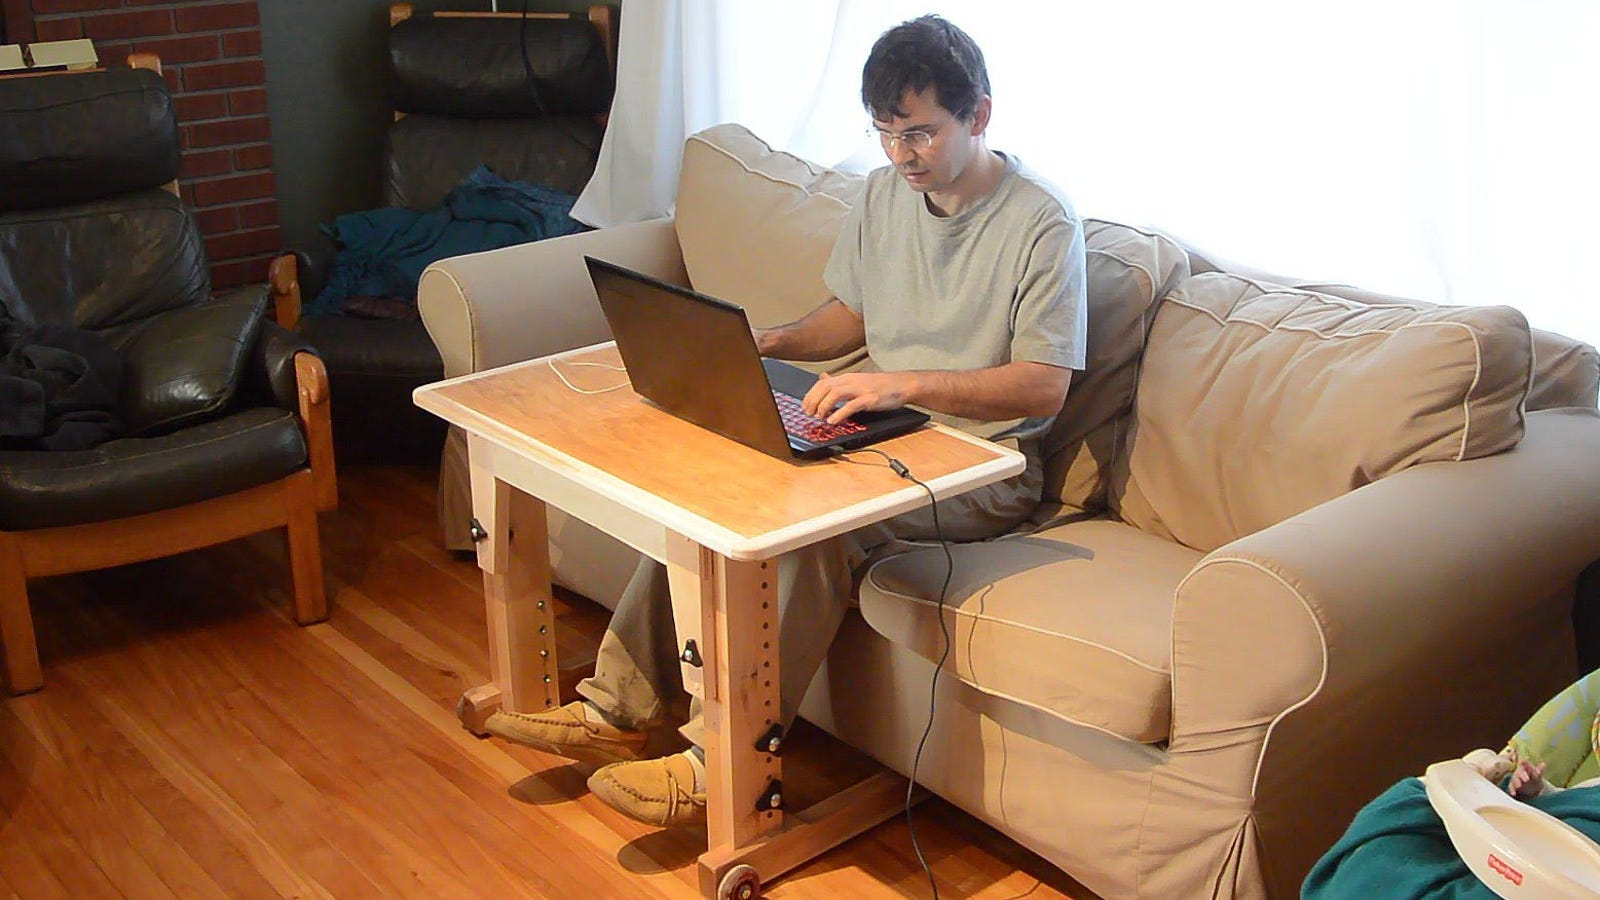 Build A Laptop Table For Sitting At The Couch That Converts To Standing Desk